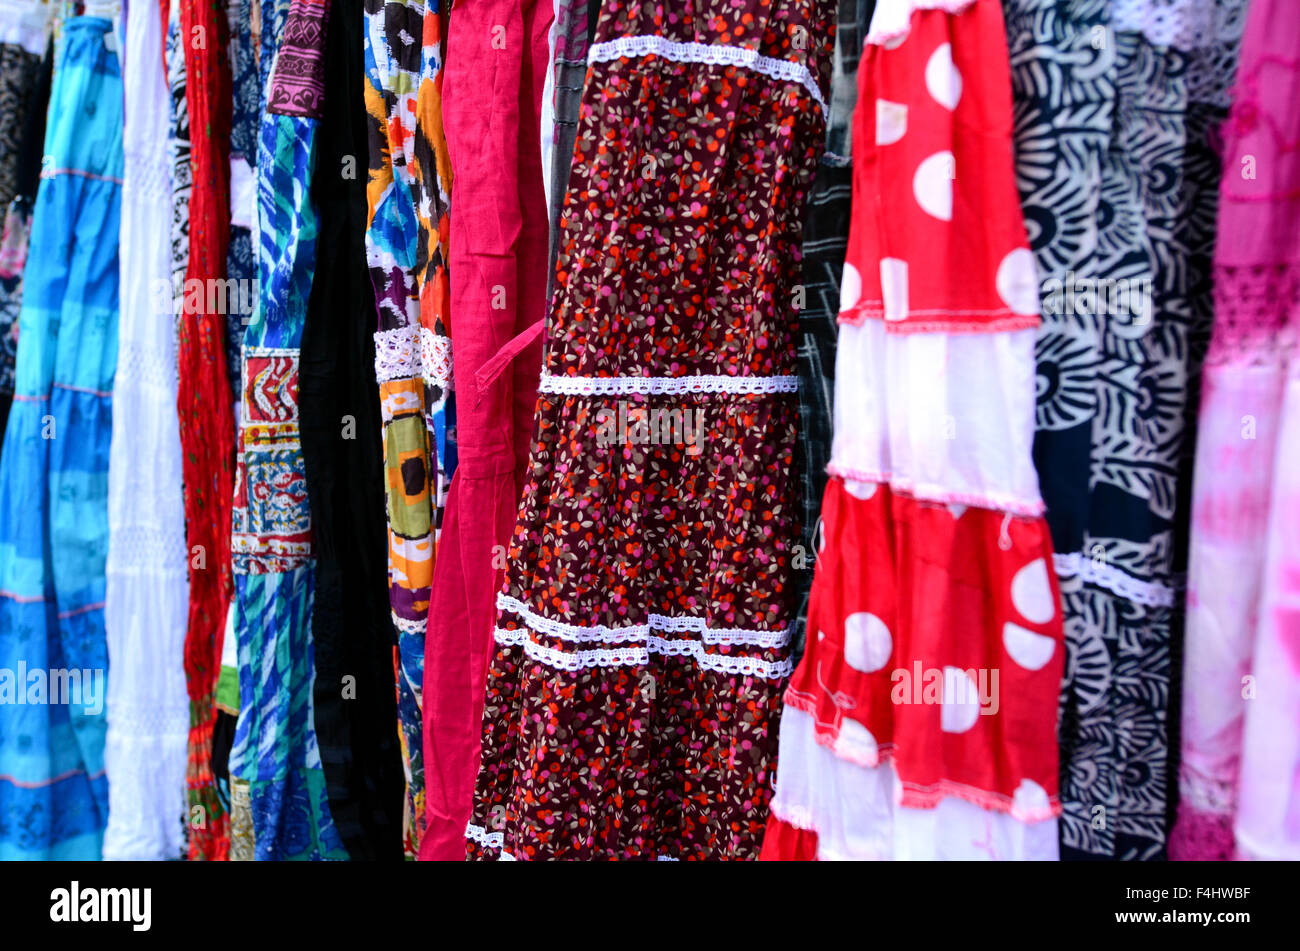 Indian women dress for sale in the market. Backgrounds and textures - Stock Image